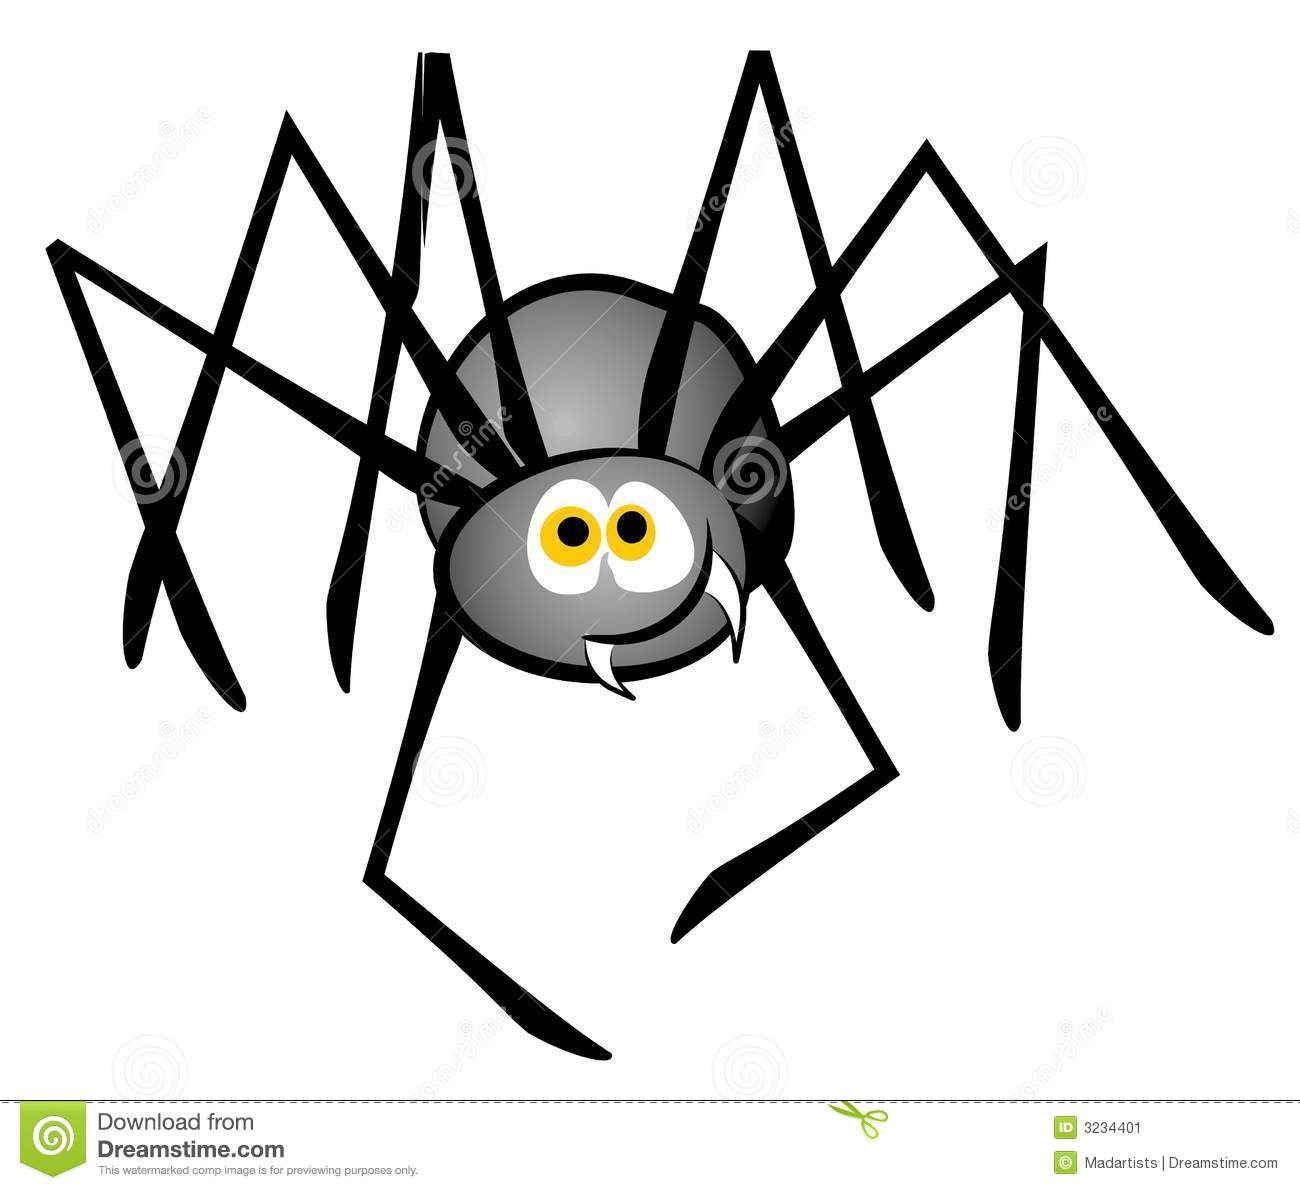 clipart spider - photo #23